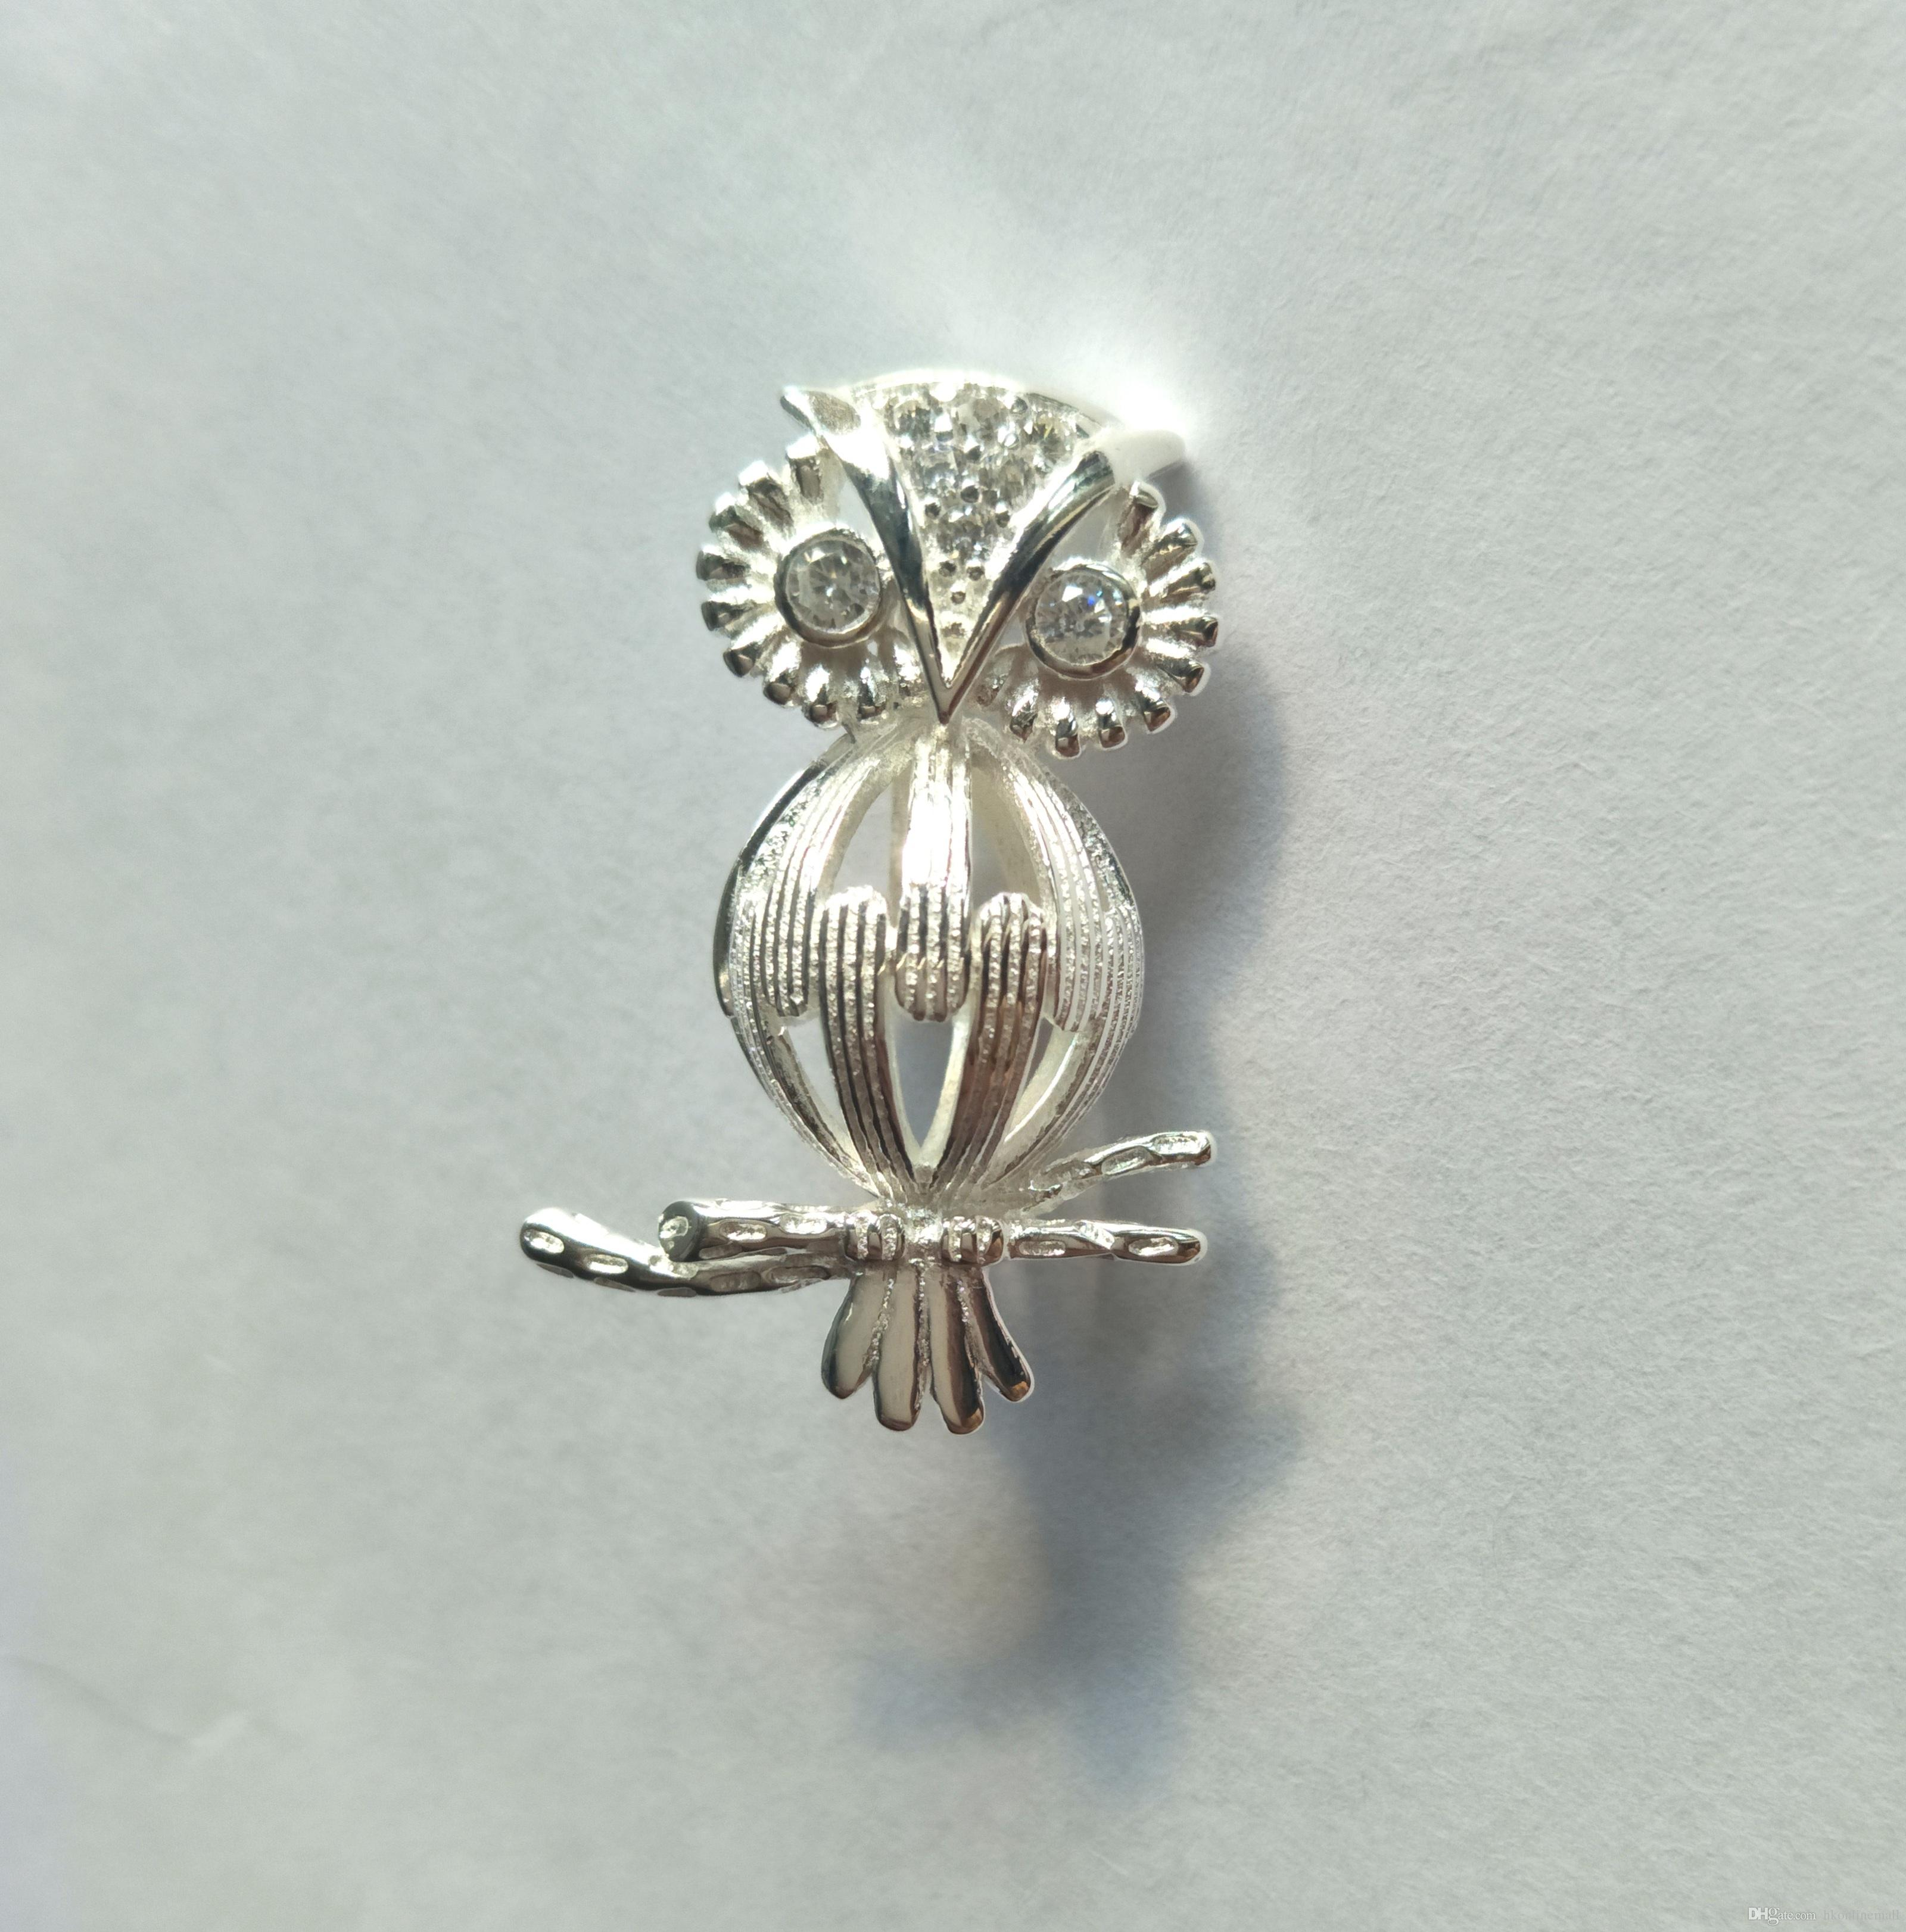 925 Silver Wish Bead Pendant Locket/ Can Open Owl Cage/ DIY Pendant Bangle Necklace Earrings Jewelry Charm